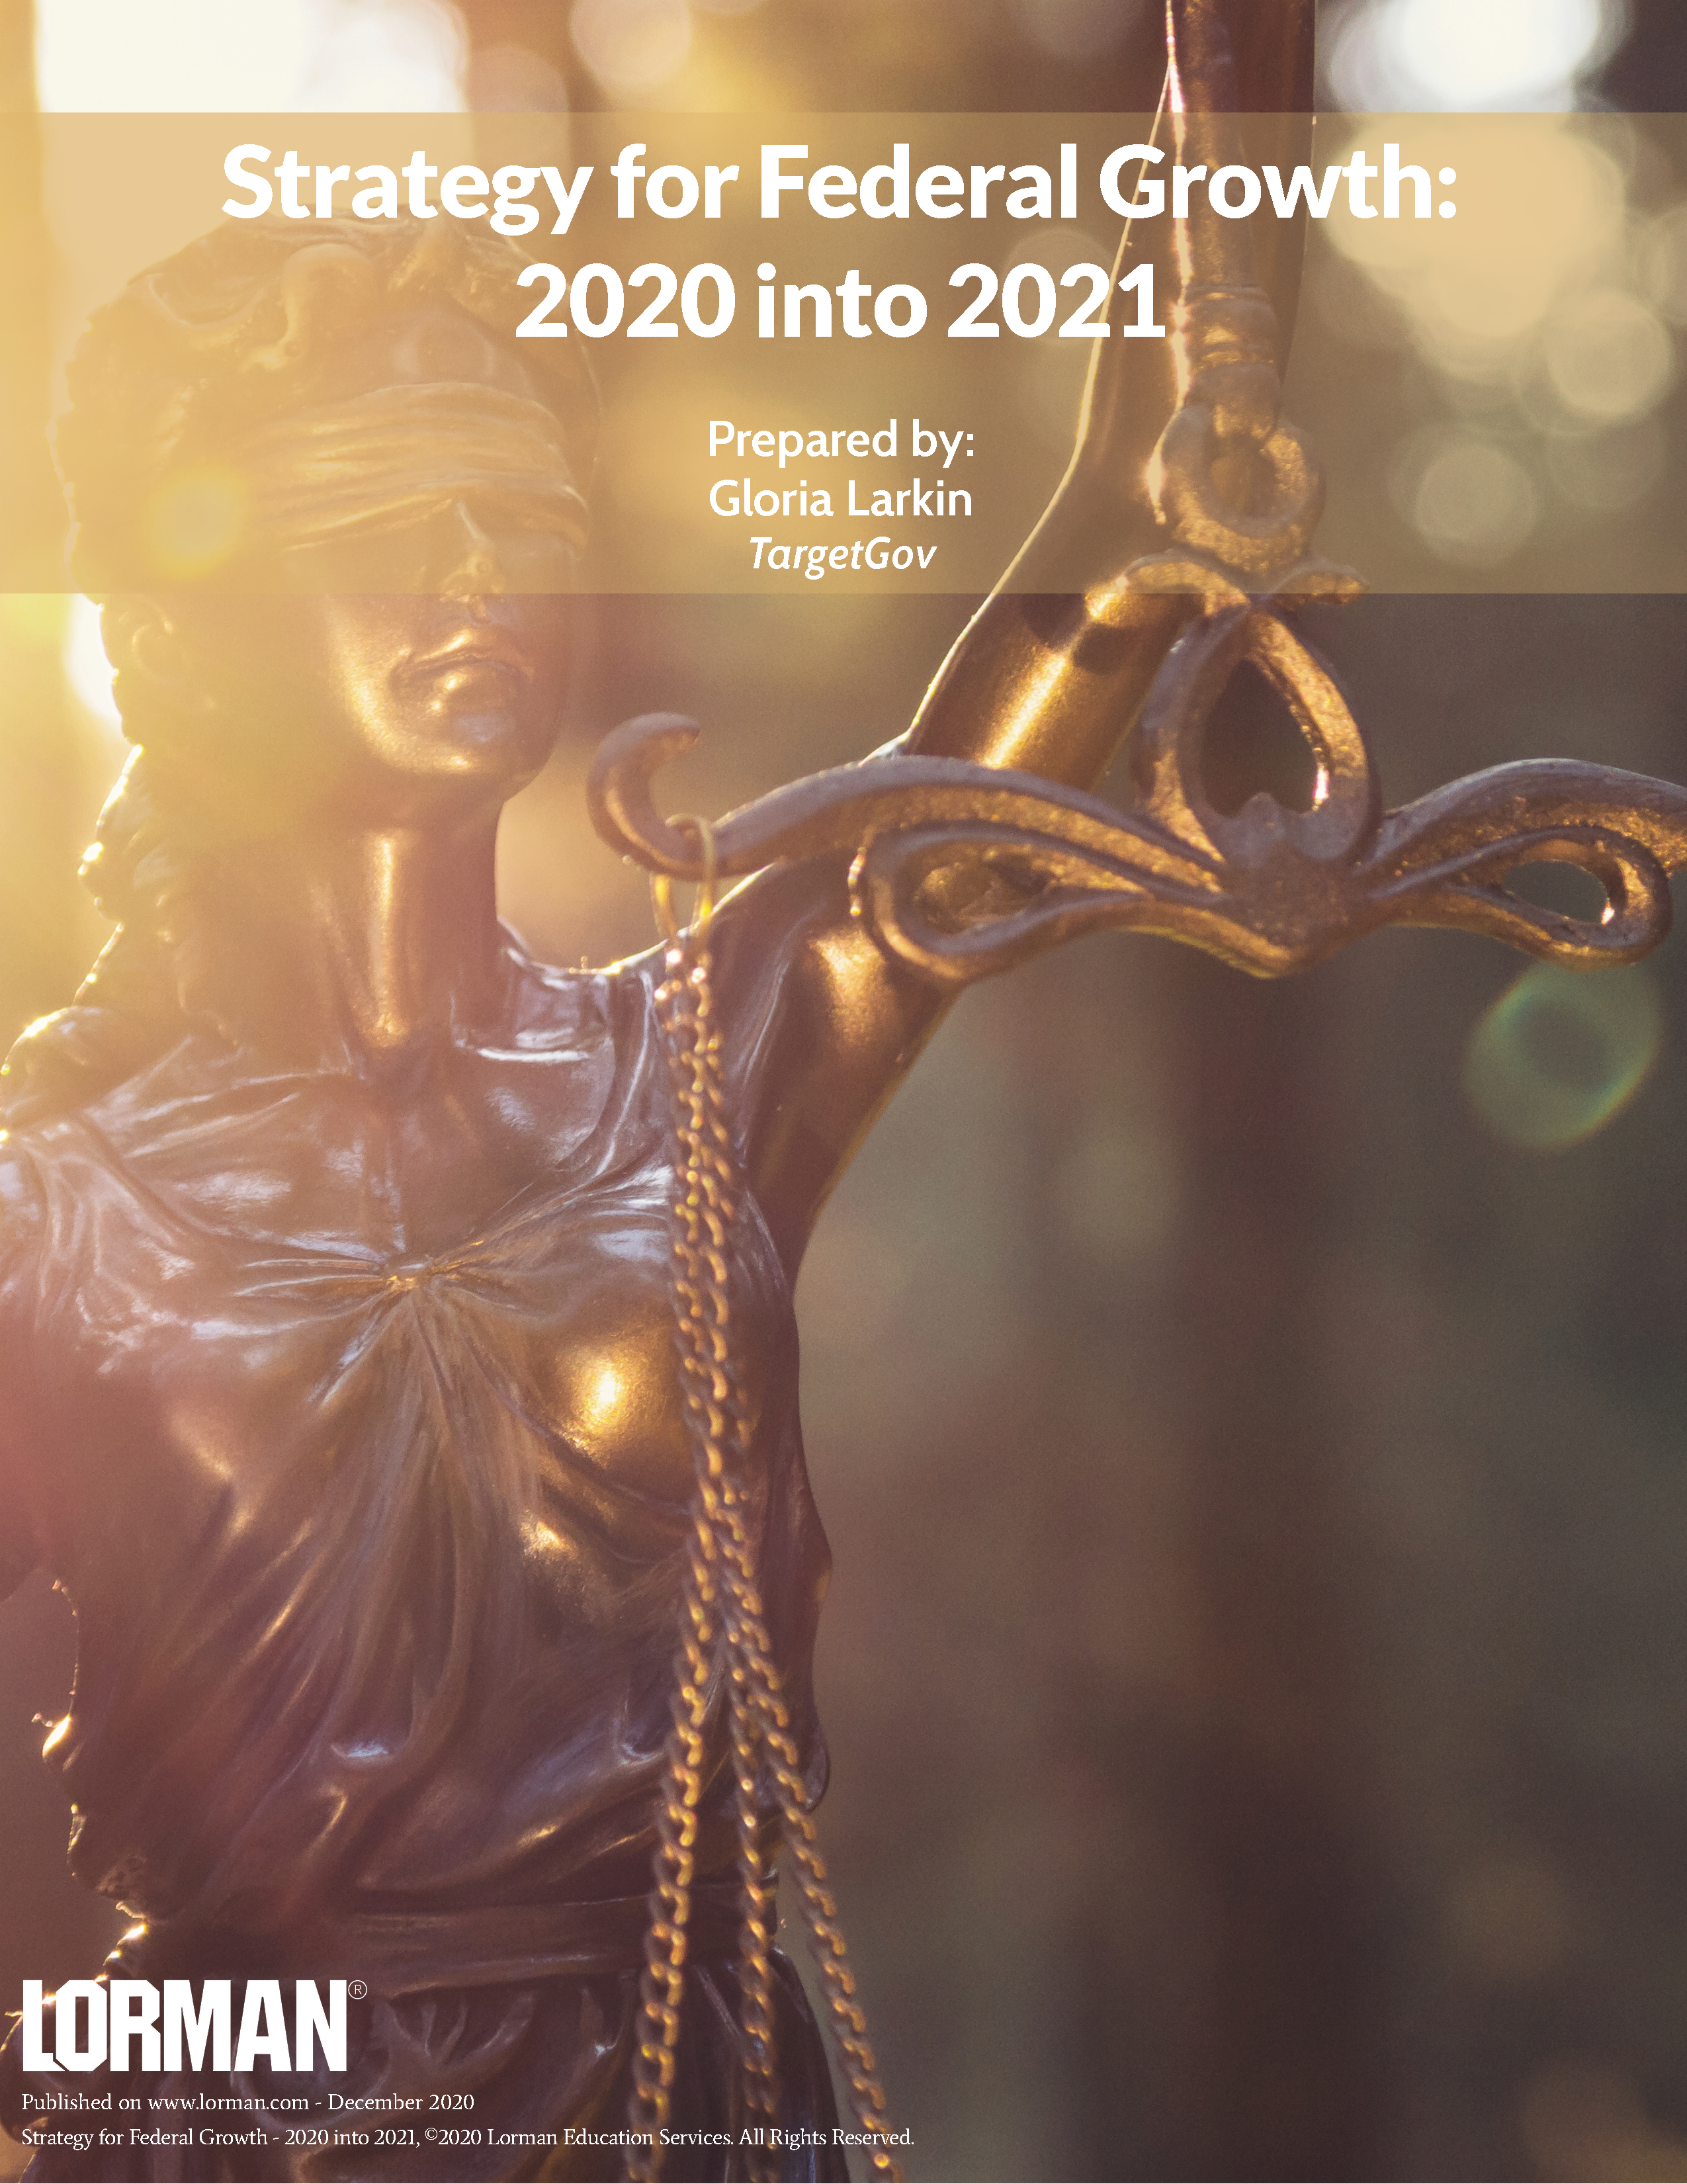 Strategy for Federal Growth - 2020 into 2021